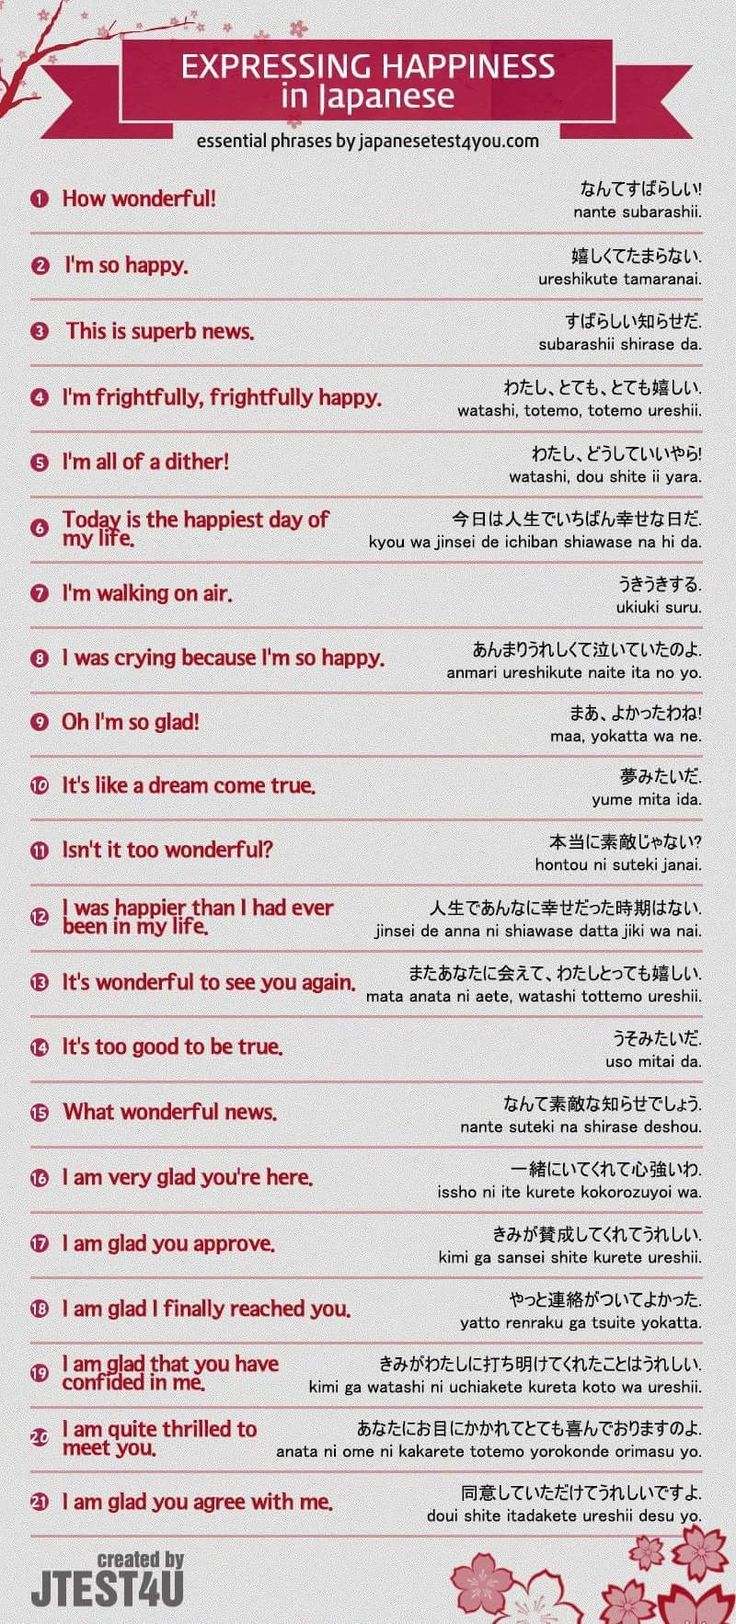 Expressing happiness in Japanese